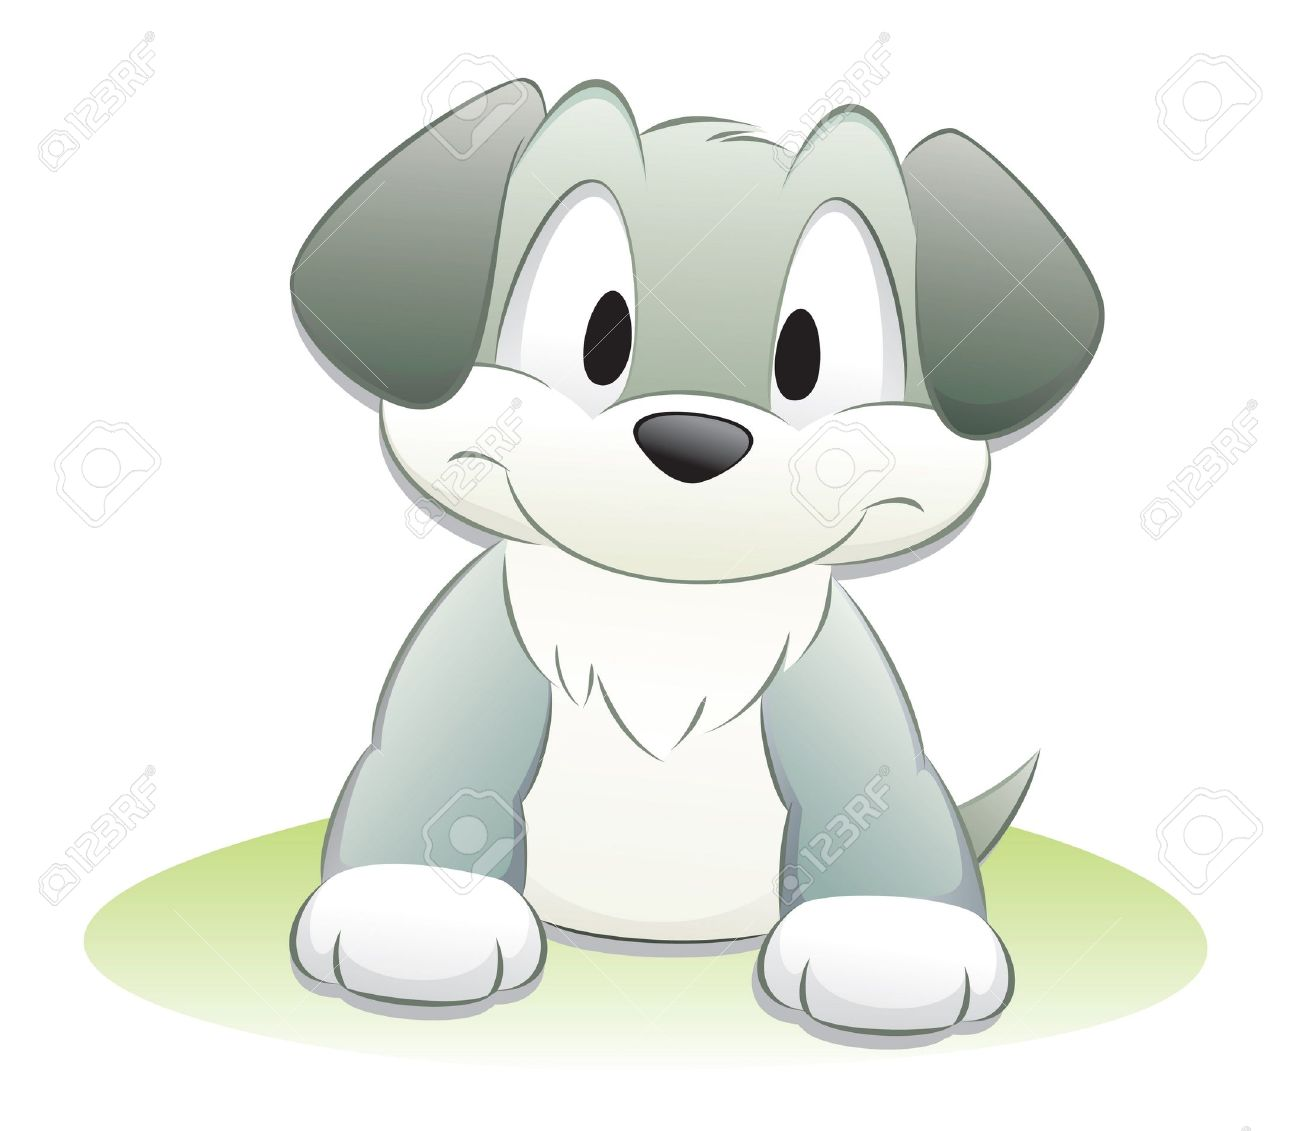 Cute cartoon dog. Isolated objects for design element. Stock Vector - 11092555